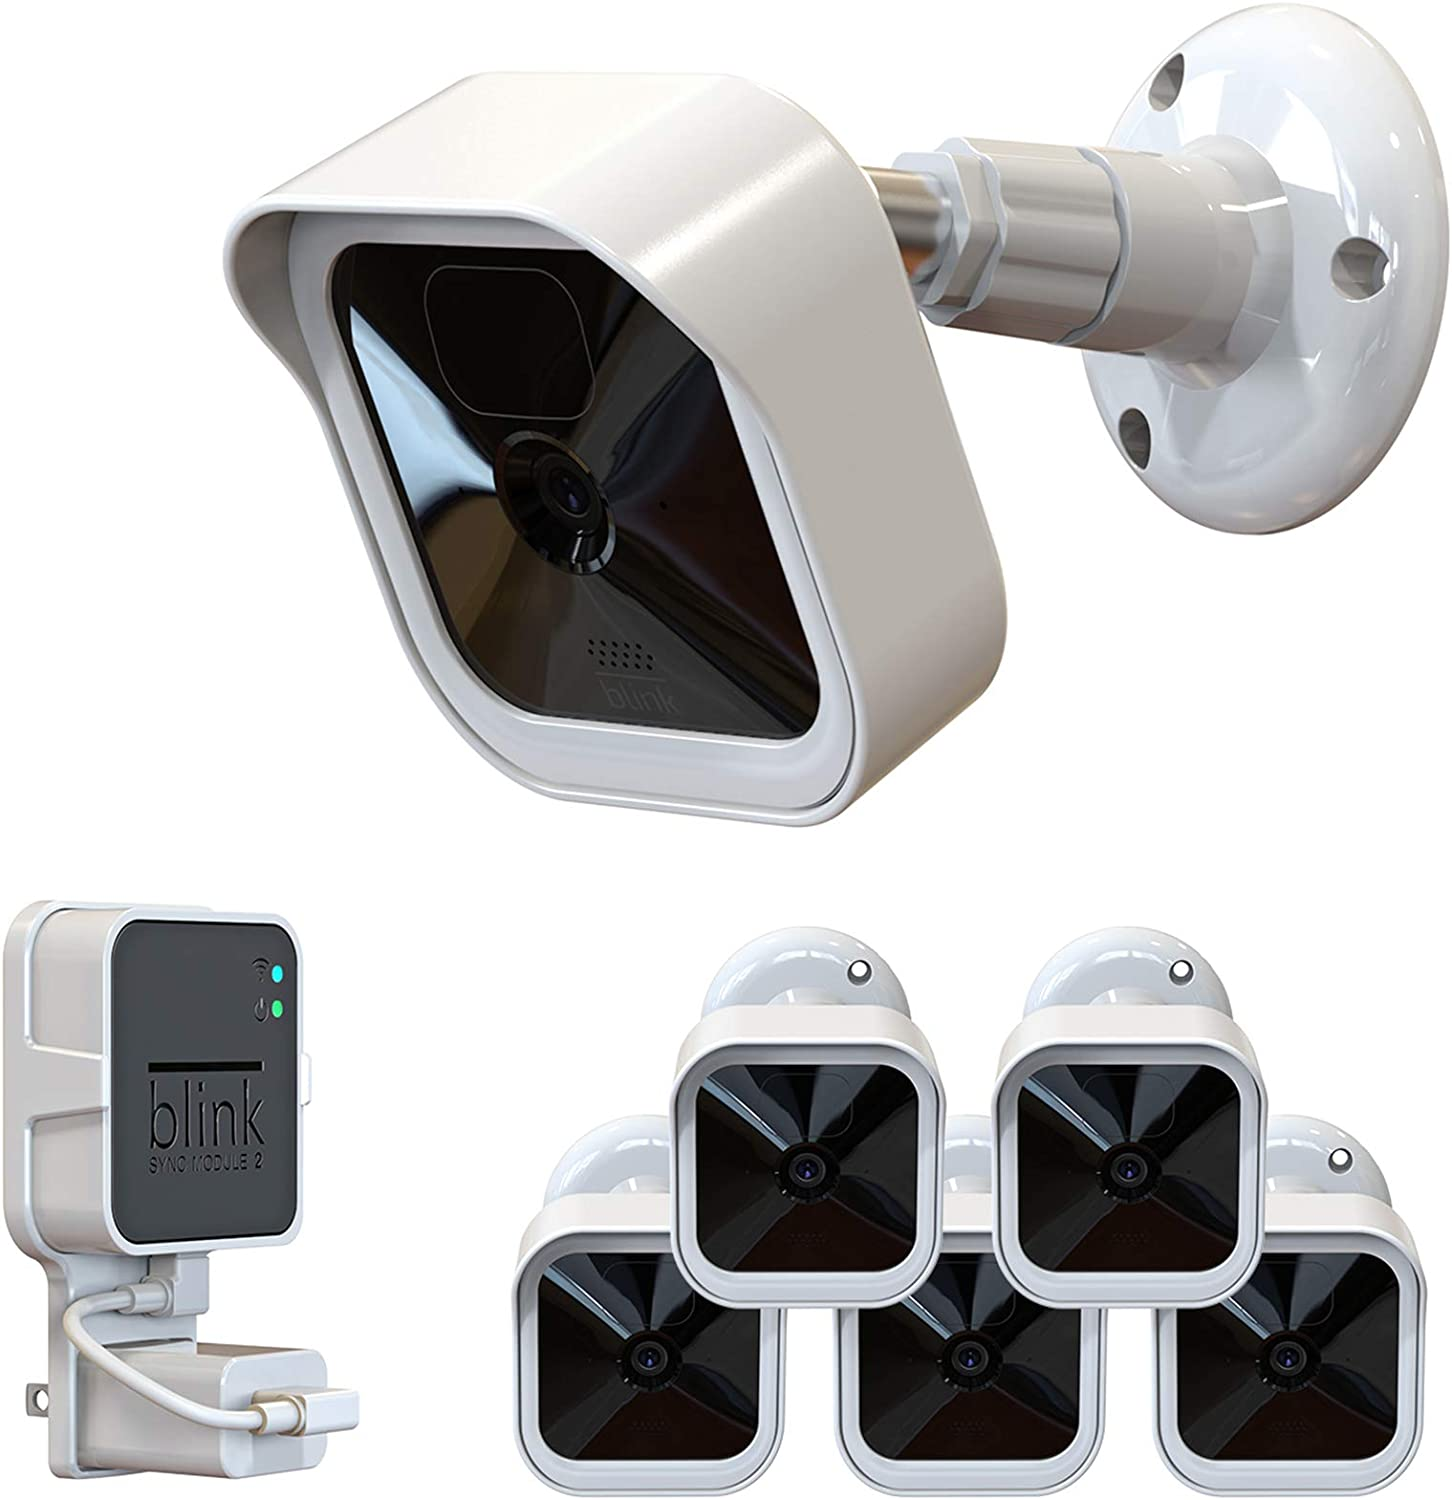 Blink Outdoor Wall Mount, Weatherproof Protective Cover and 360 Degree Adjustable Mount with Blink Sync Module 2 Outlet Mount for All-New Blink Outdoor Indoor Security Camera System (White, 5 Pack)